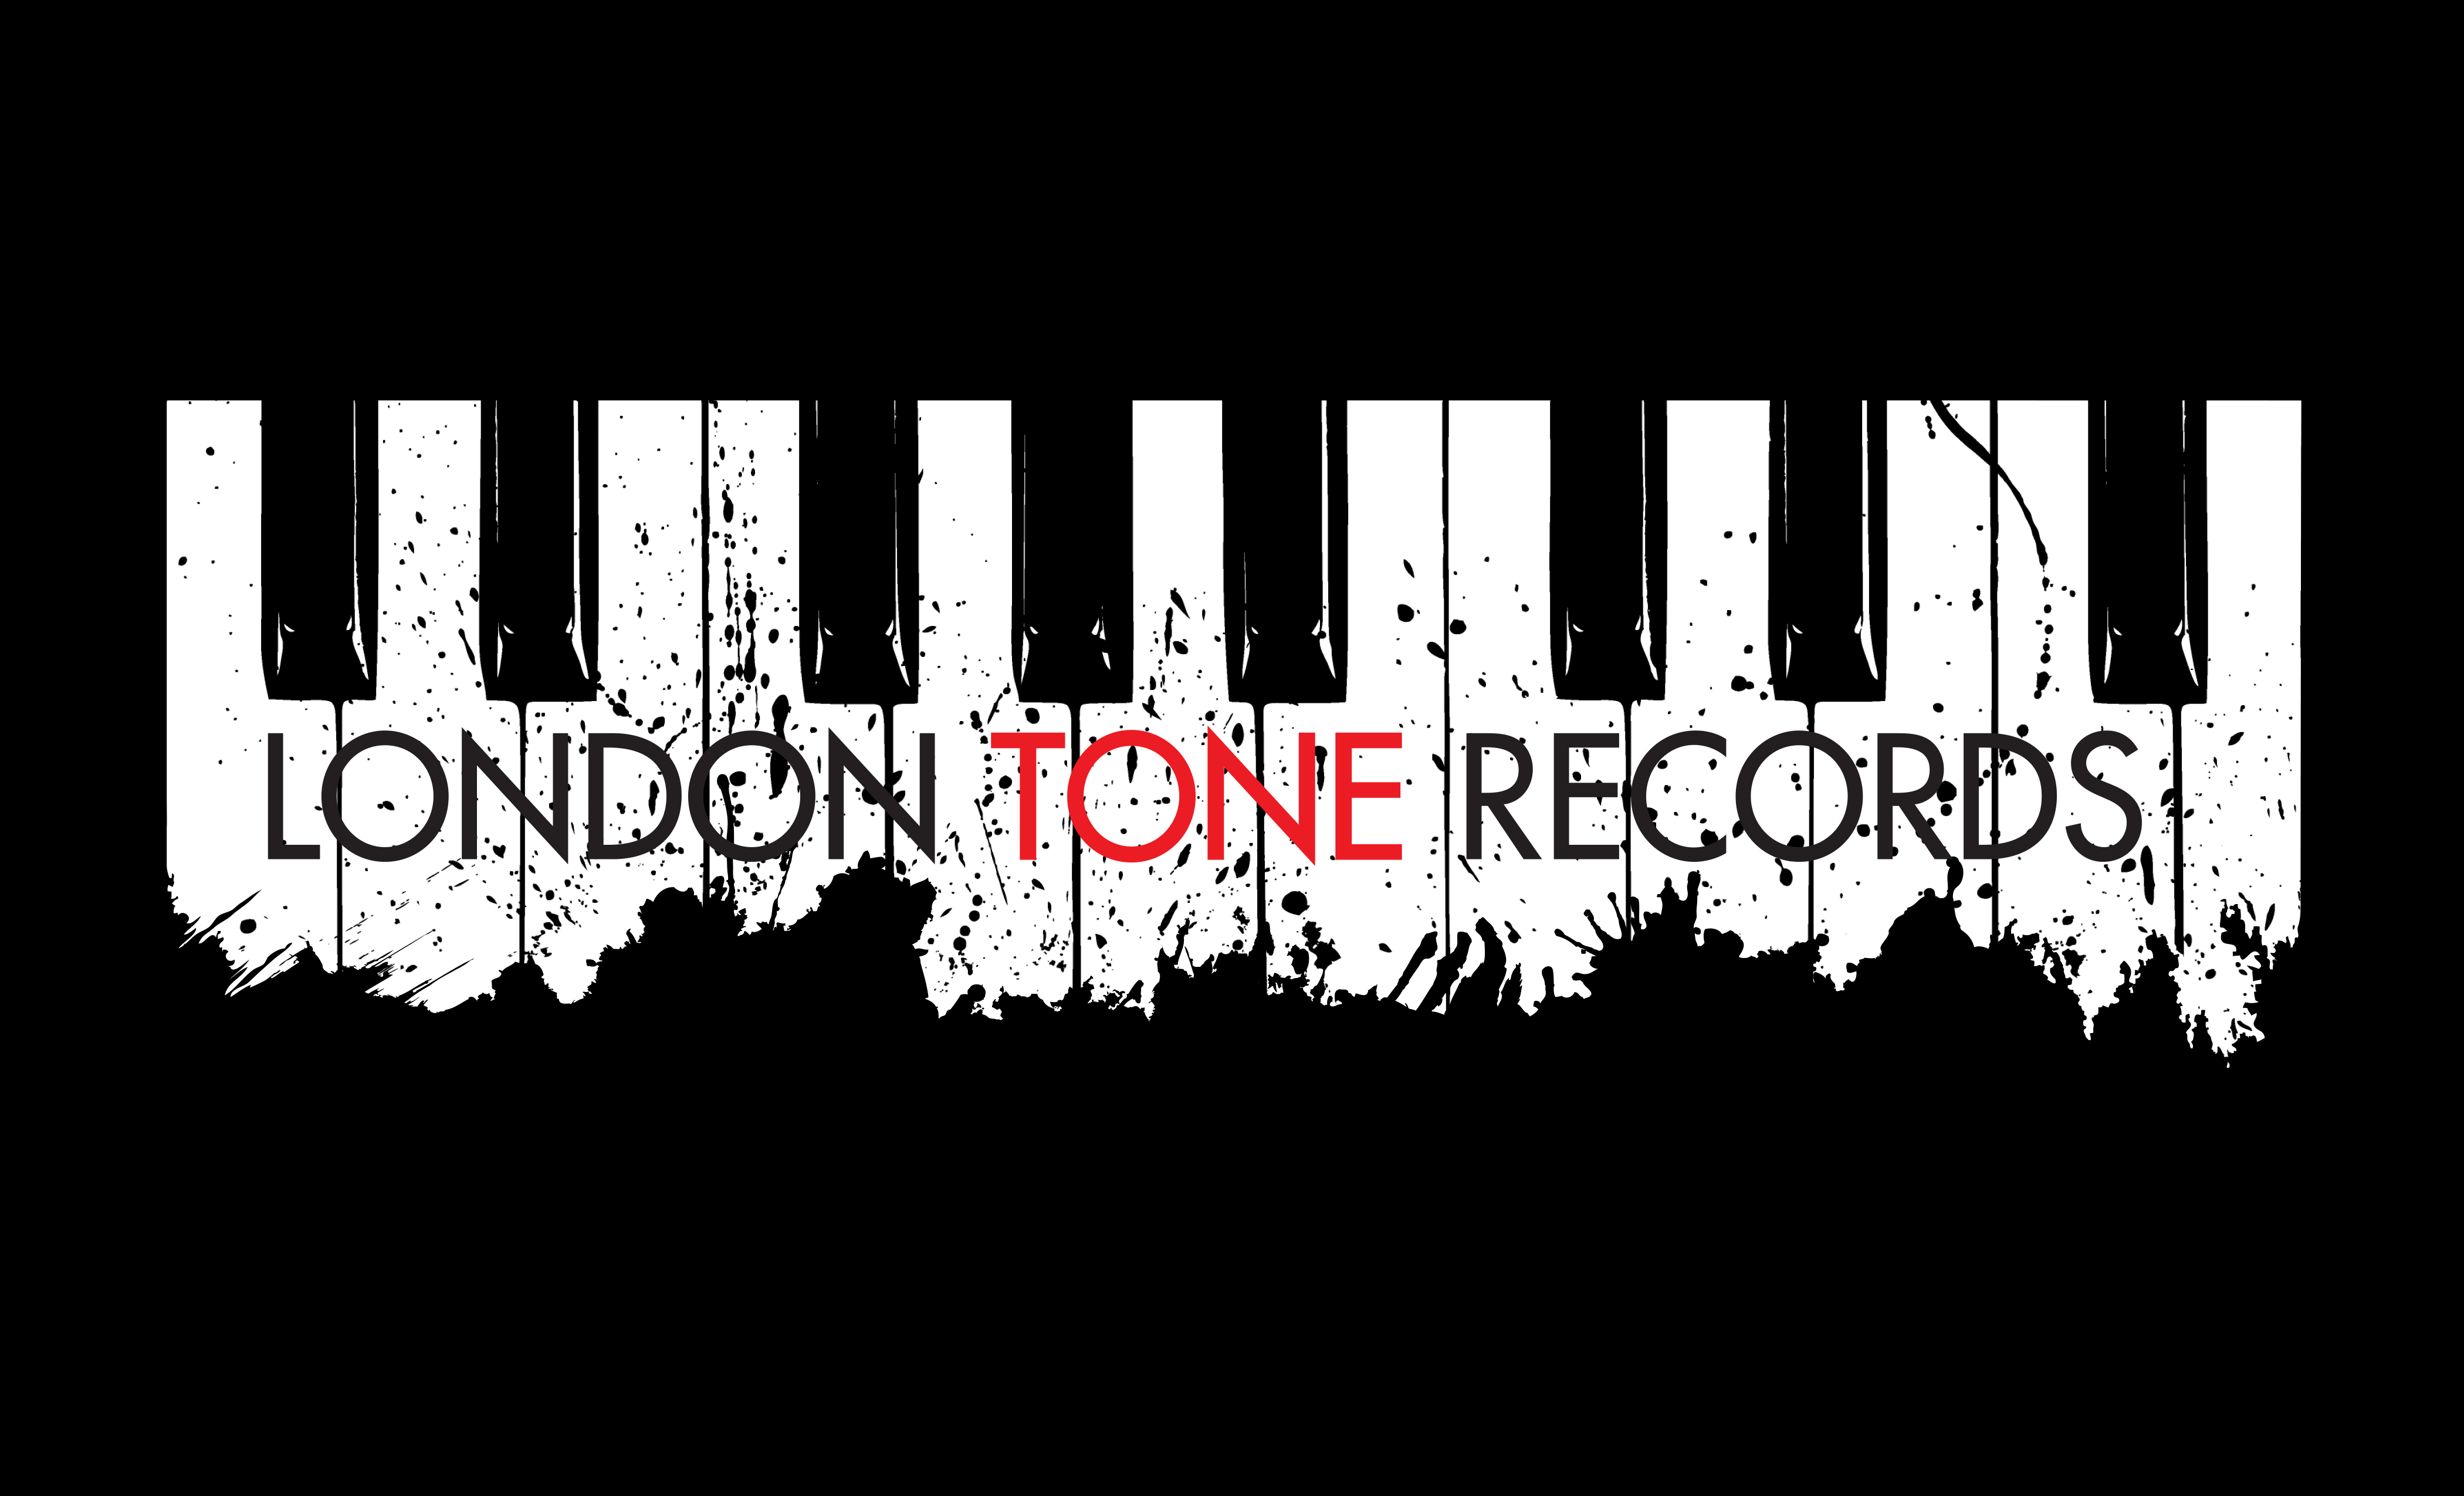 London Tone Records